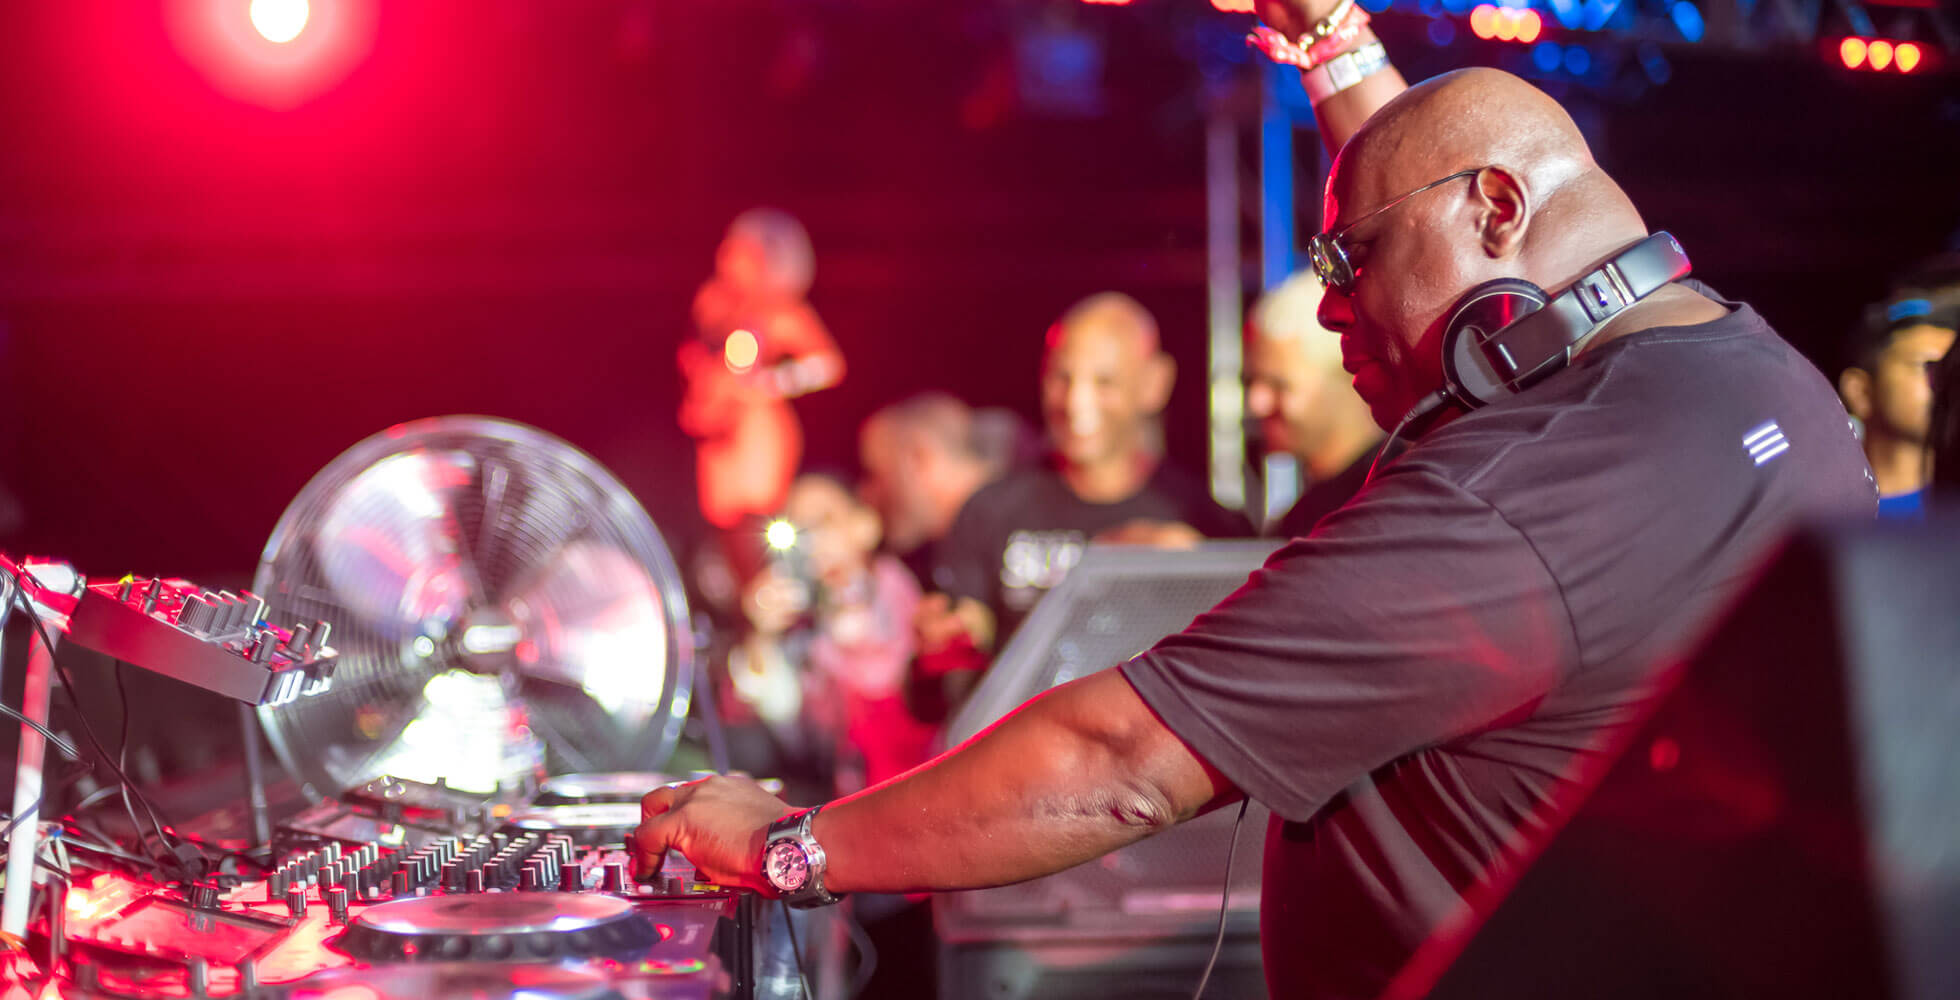 The Carl Cox MegaStructure Returns for all 3 Days of Ultra Music Festival this March!